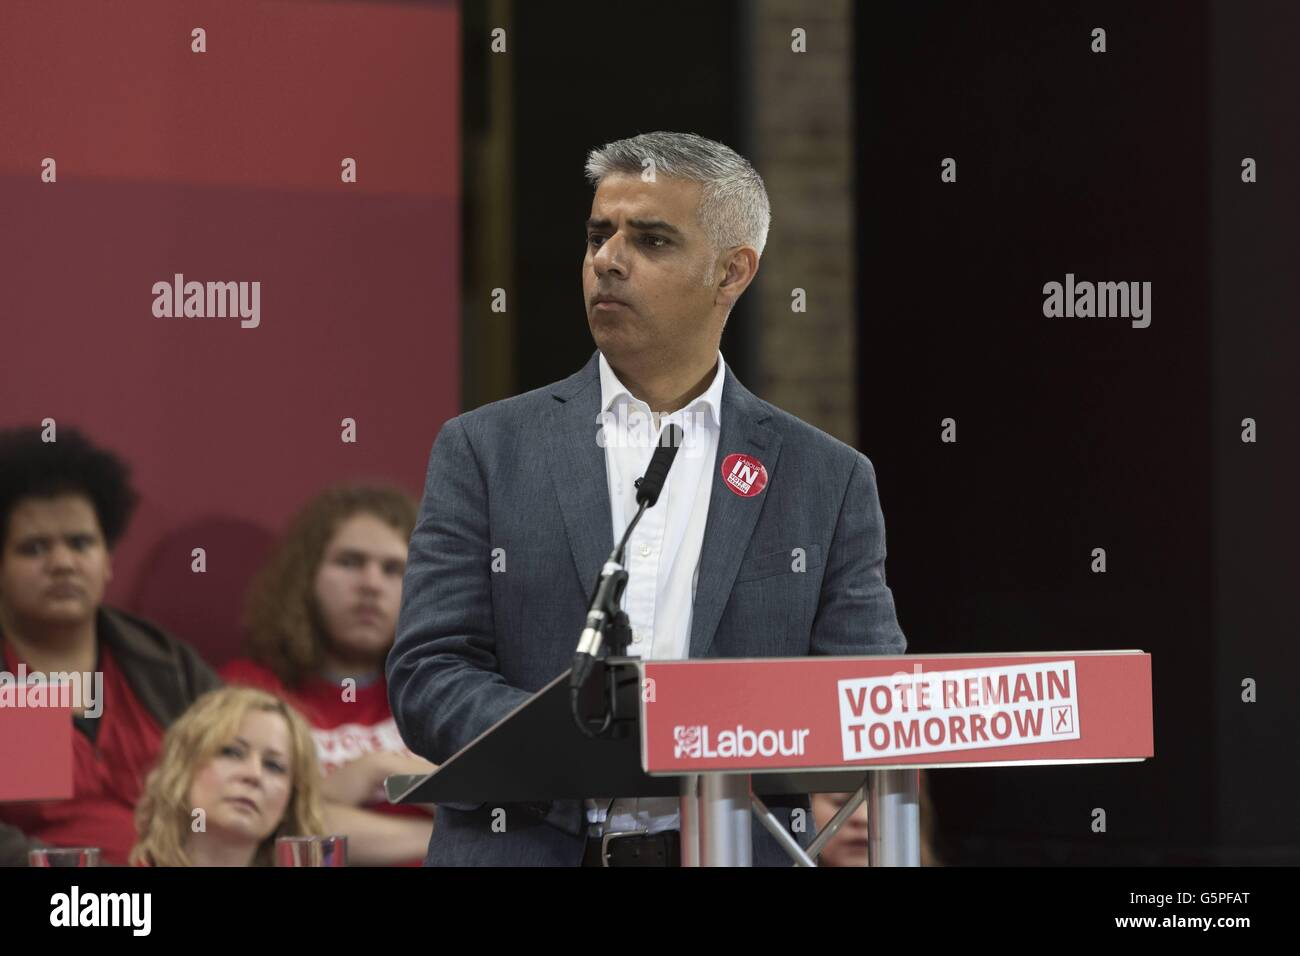 Sadiq Khan, Mayor of London, Labour Party leaders during a speech at KingÂ_s Cross London asking to vote Remain - Stock Image